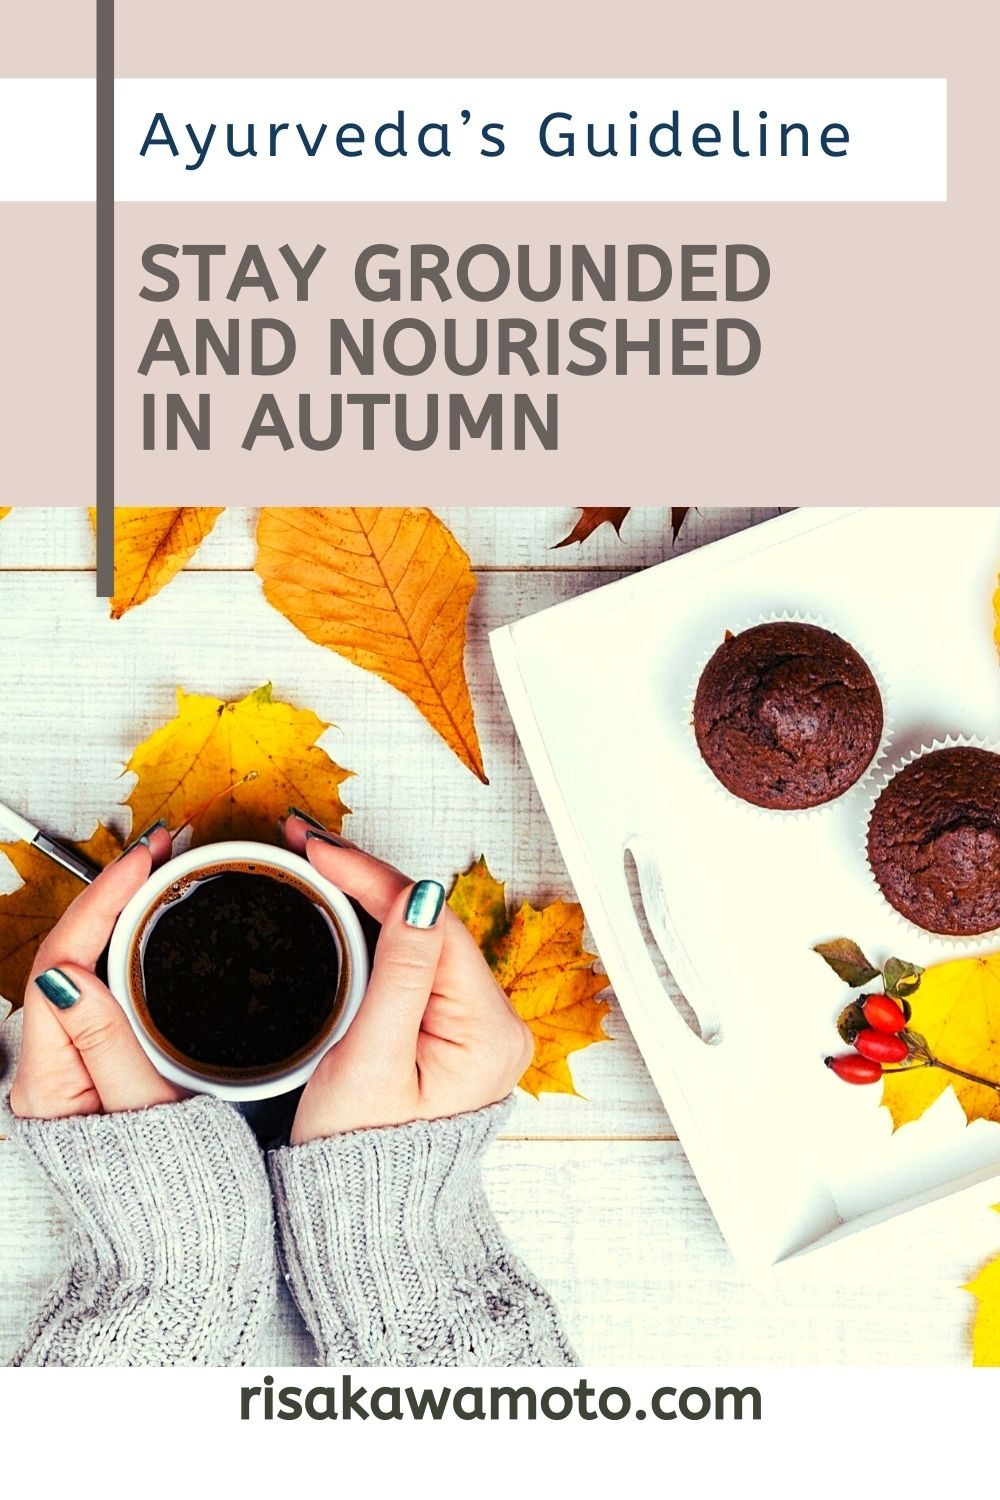 Stay Grounded and Nourished in Autumn / Fall - Ayurveda's Guideline to Autumn